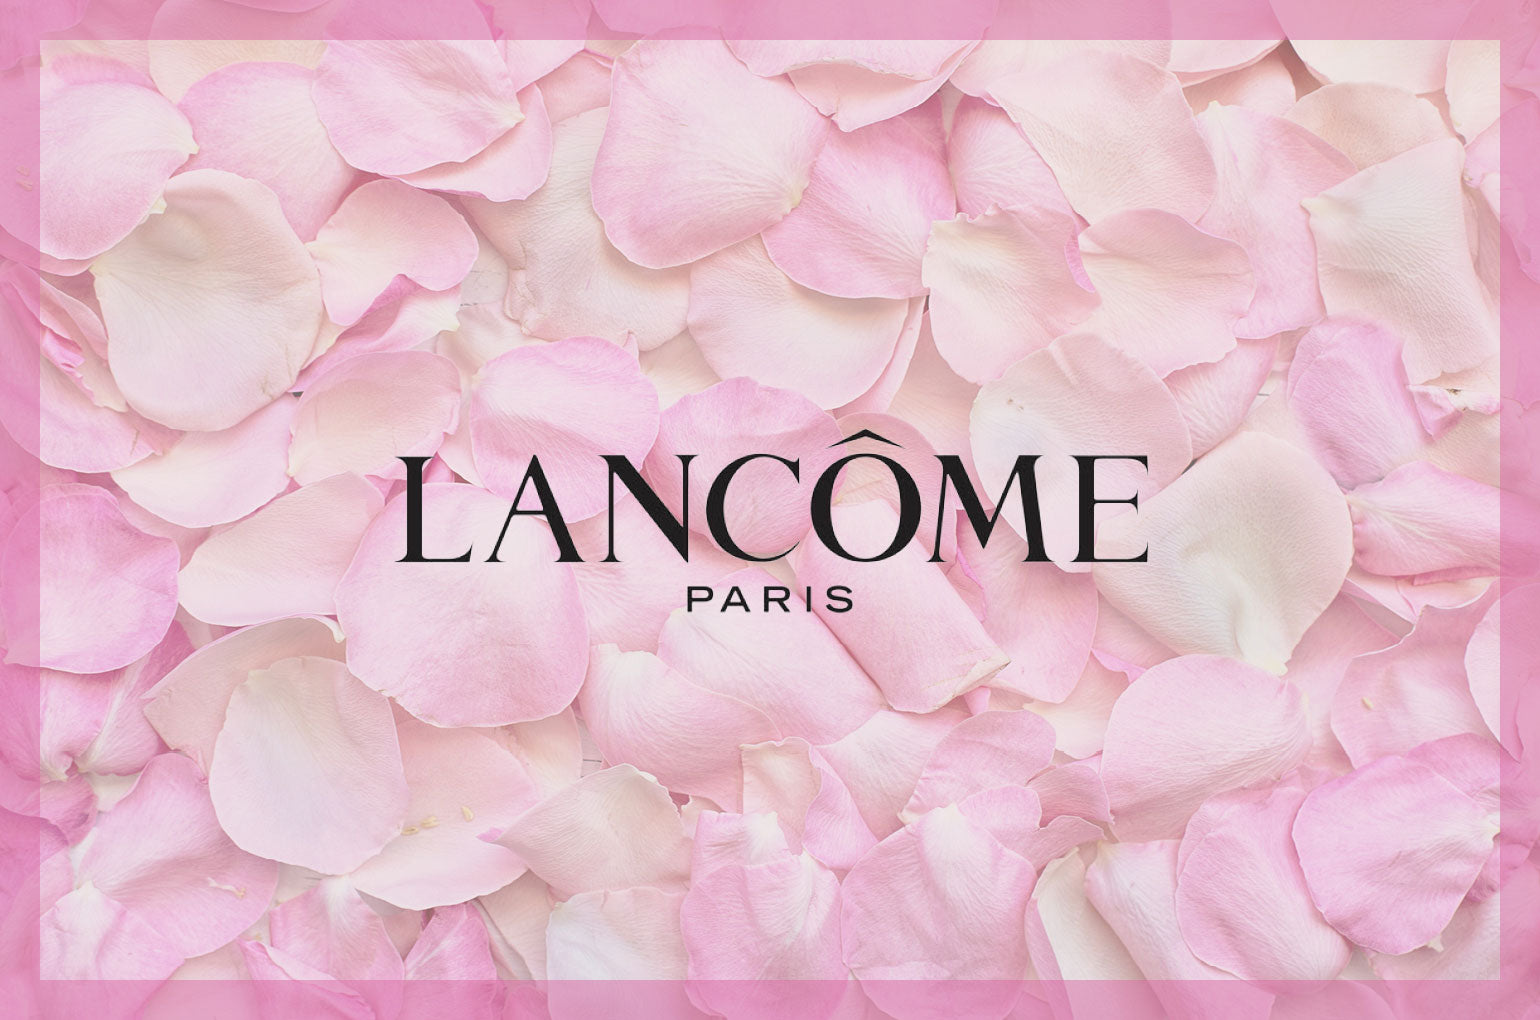 Lancôme Soothing Rose Collection